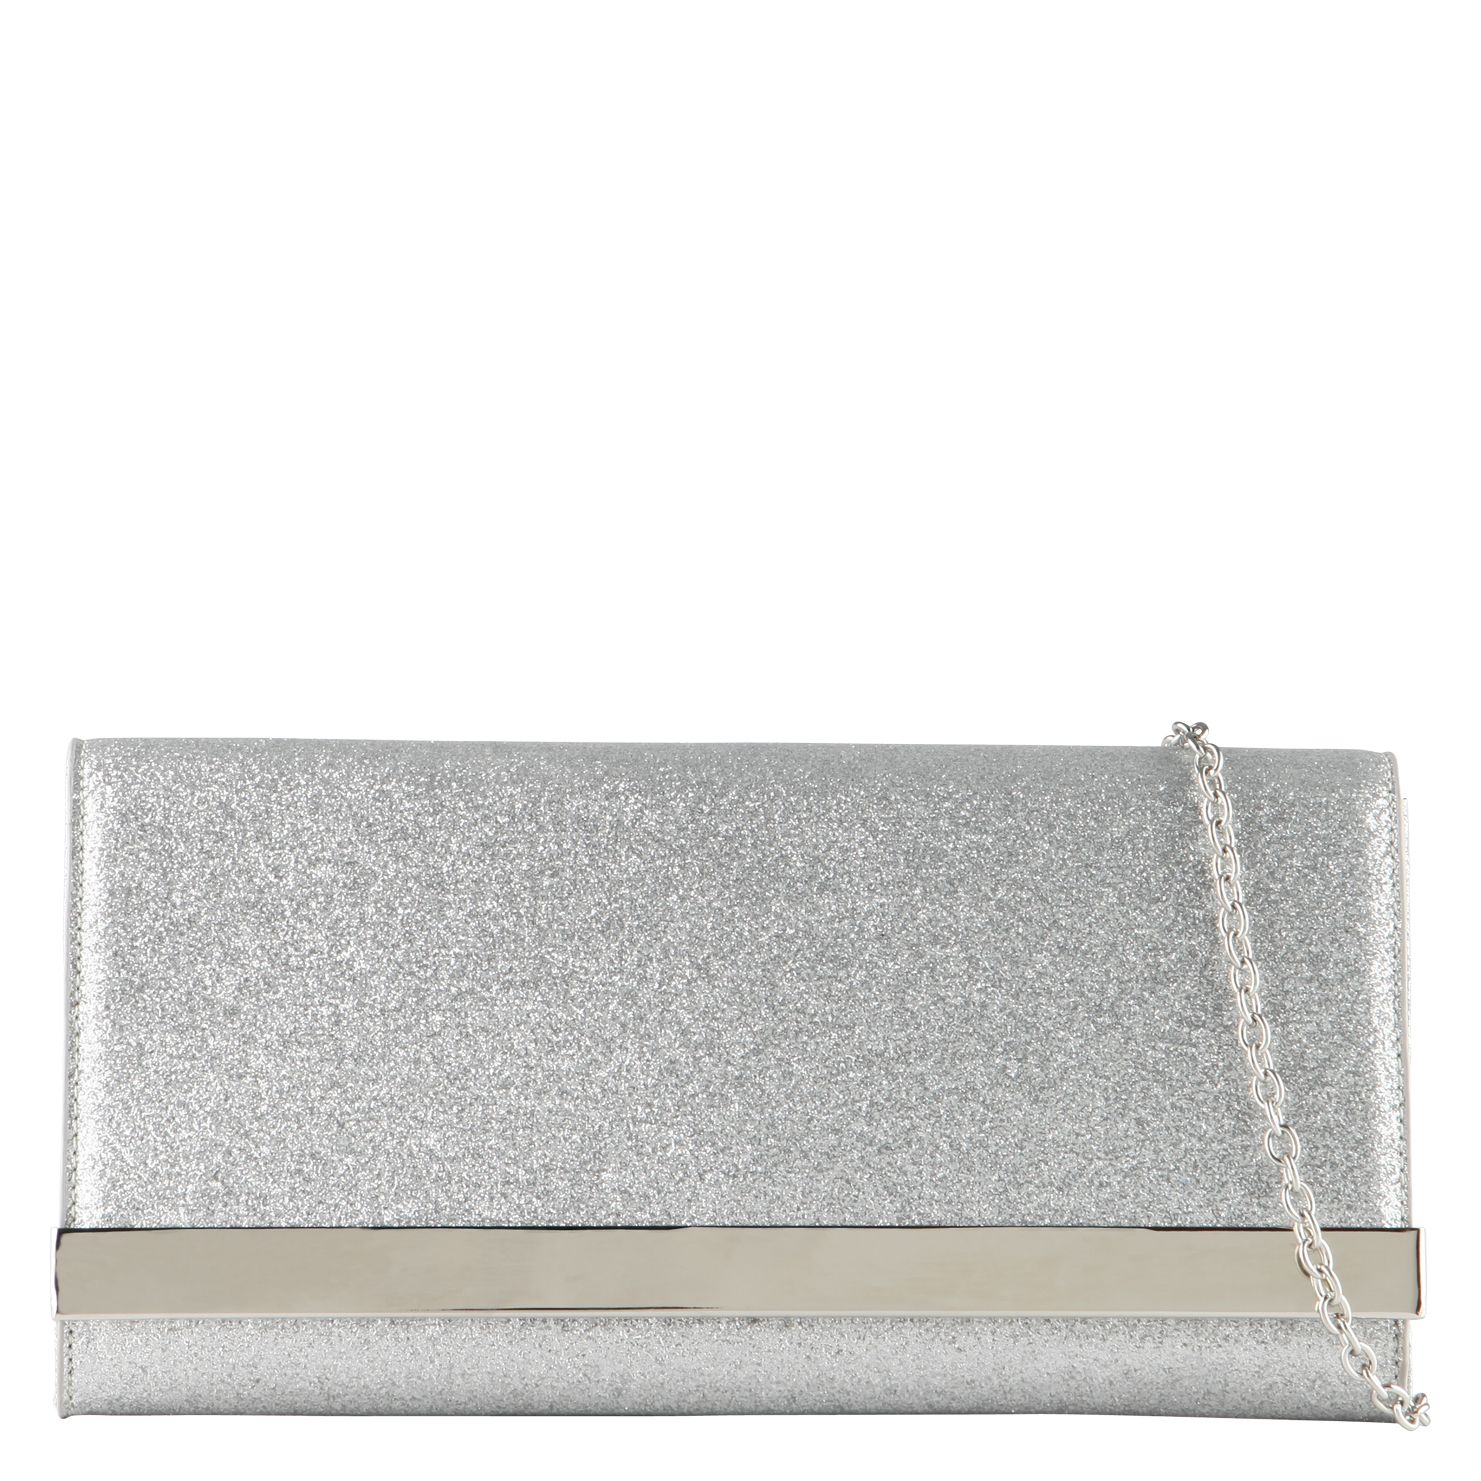 Husul Clutch Bag